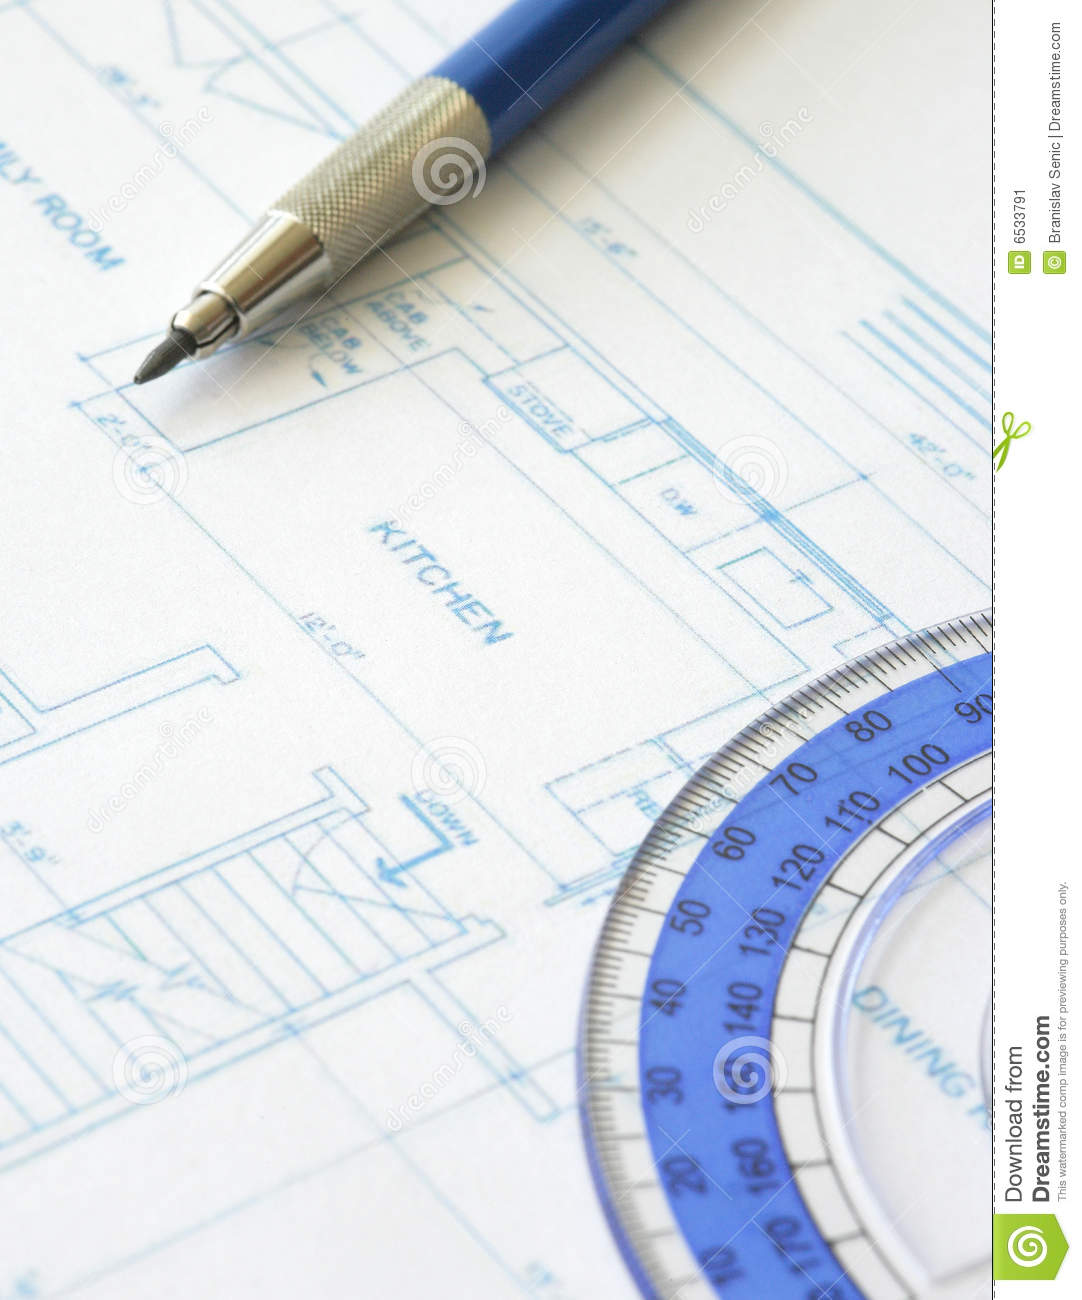 House Plan Blueprint Architect Design Stock Image